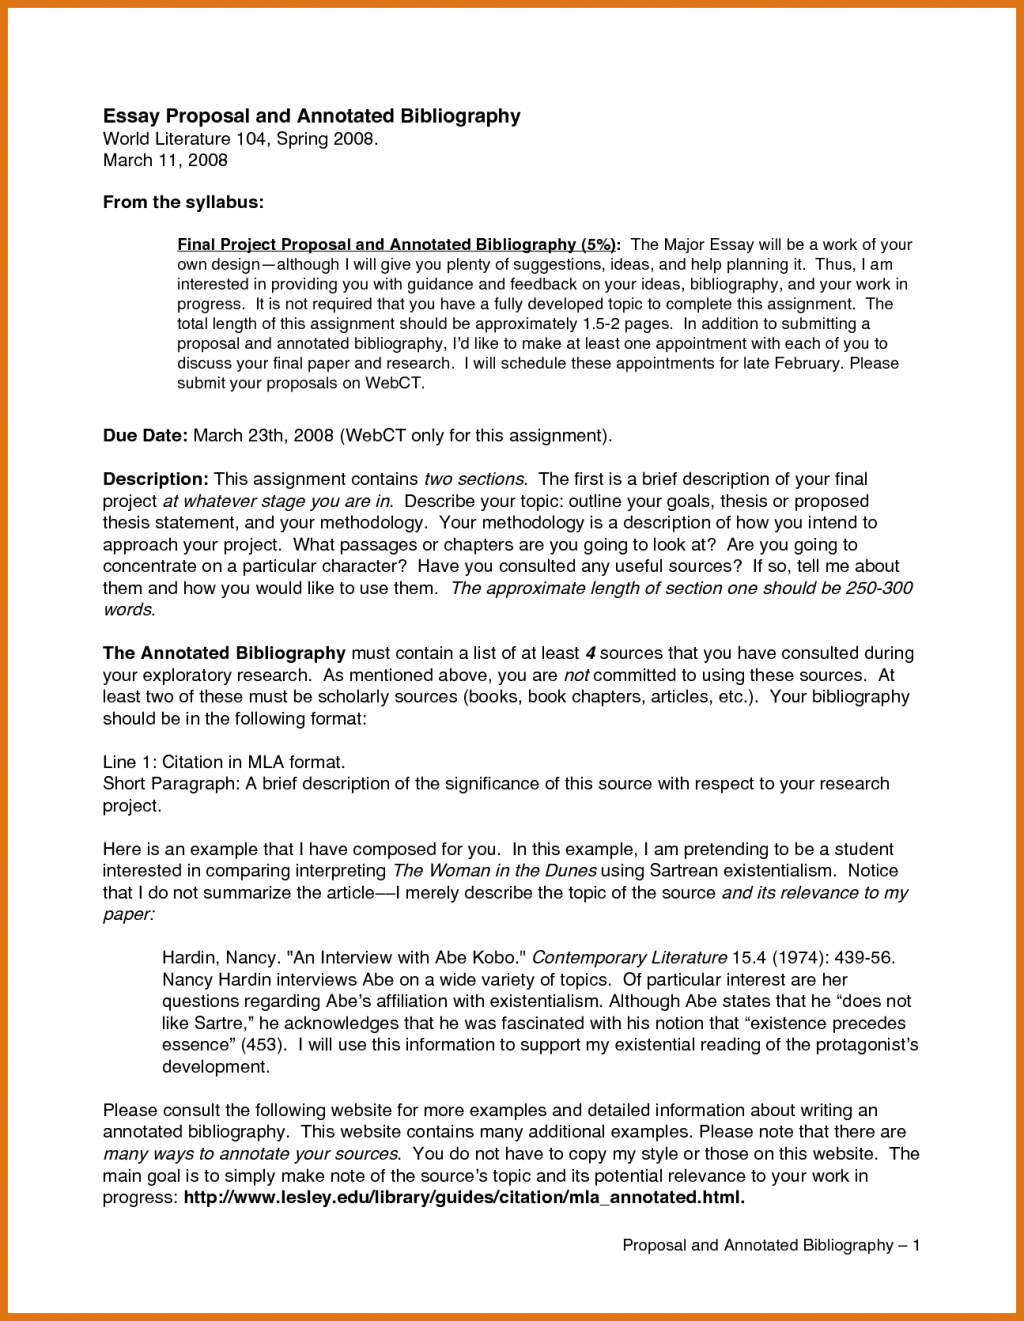 017 Research Paper Bunch Ideas Of Chicago Style Essays Citation Essay How To Cite Sources Mla Format Excellent Bibliography Sample For Fahrenheit20 1024x1321 Literary Magnificent Topic Examples Full